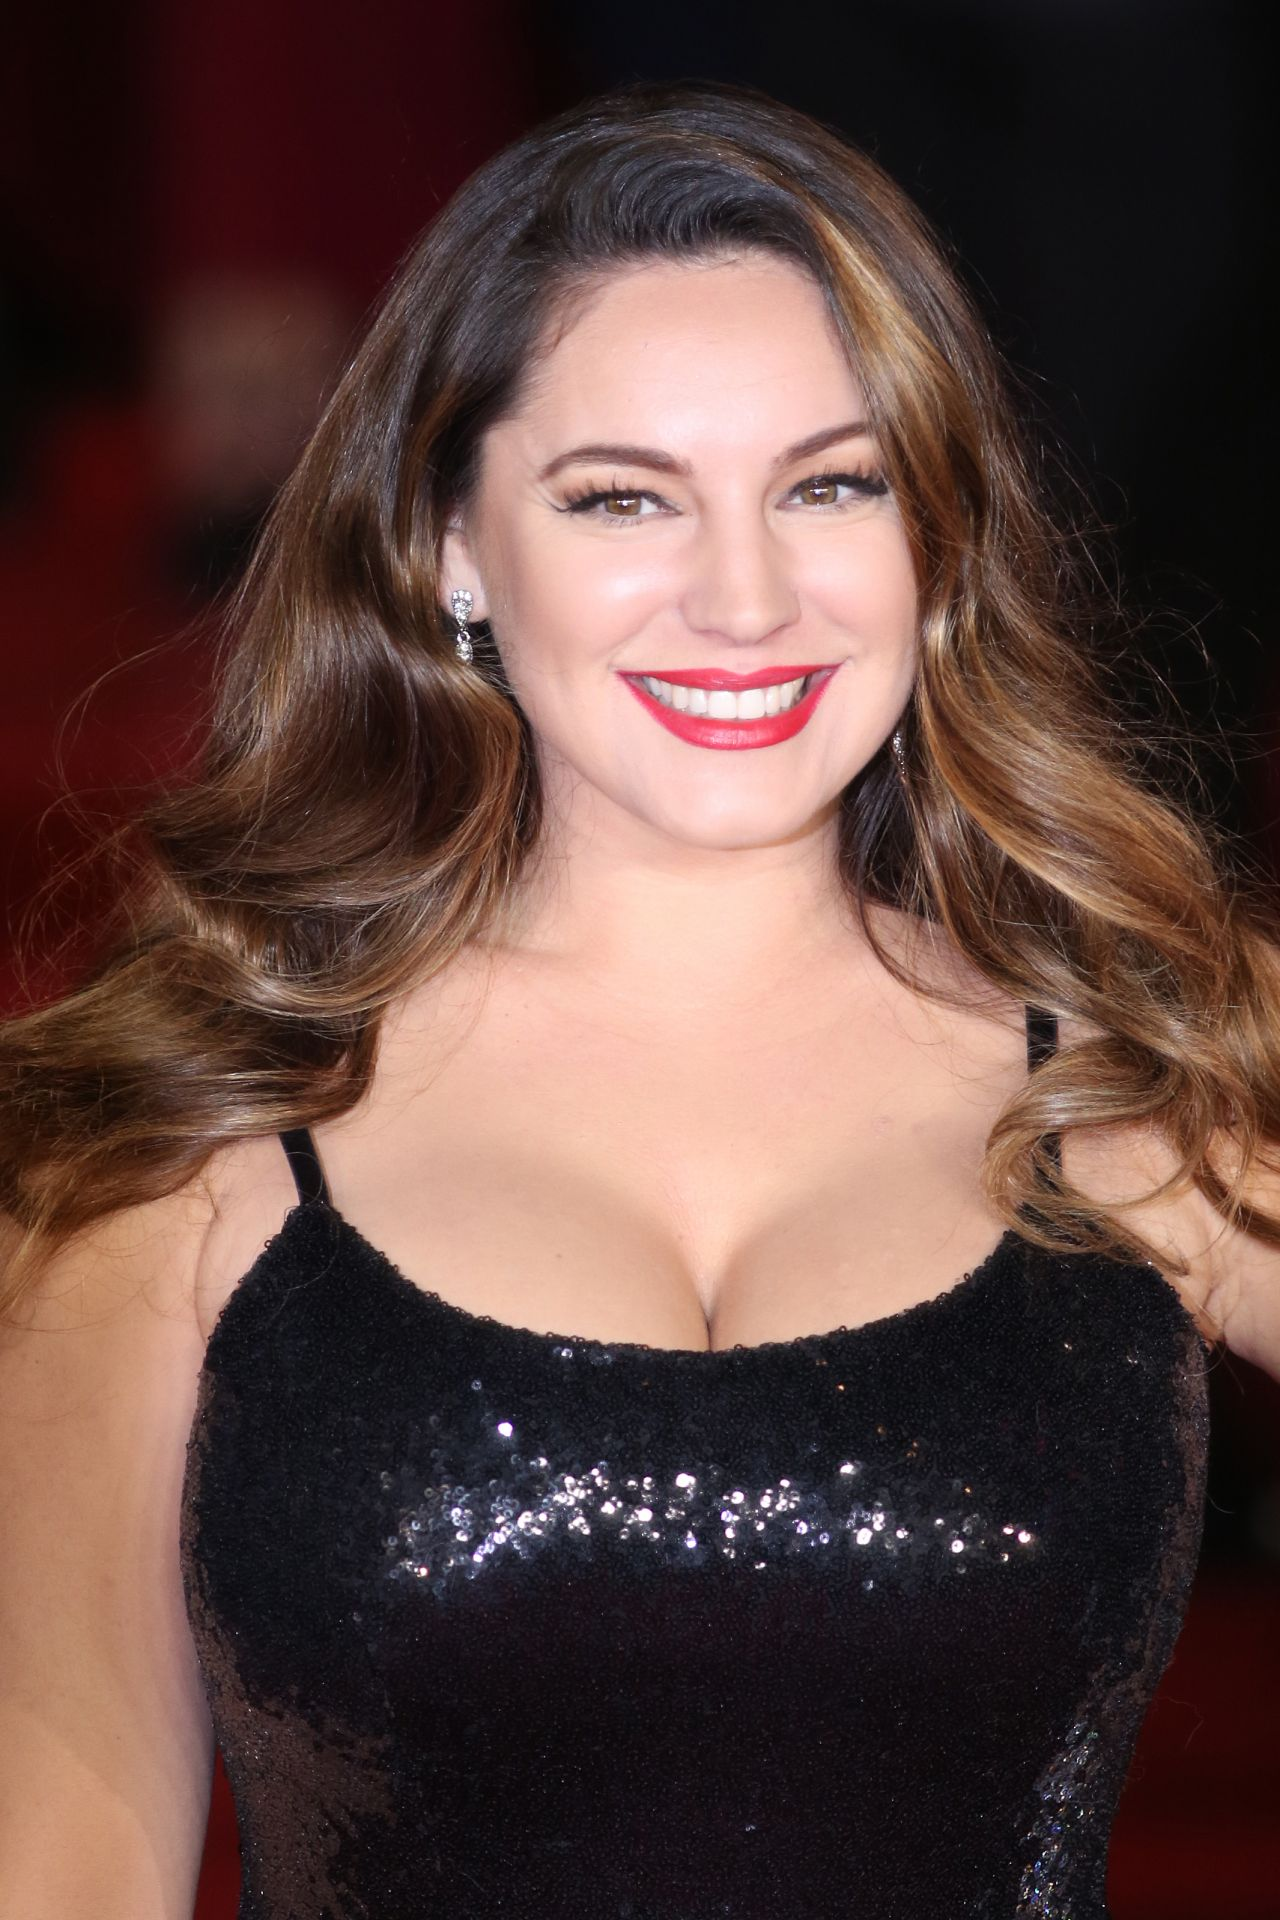 Modern Family's Sofia Vergara Flashes Major Cleavage In Busty Throwback Snap